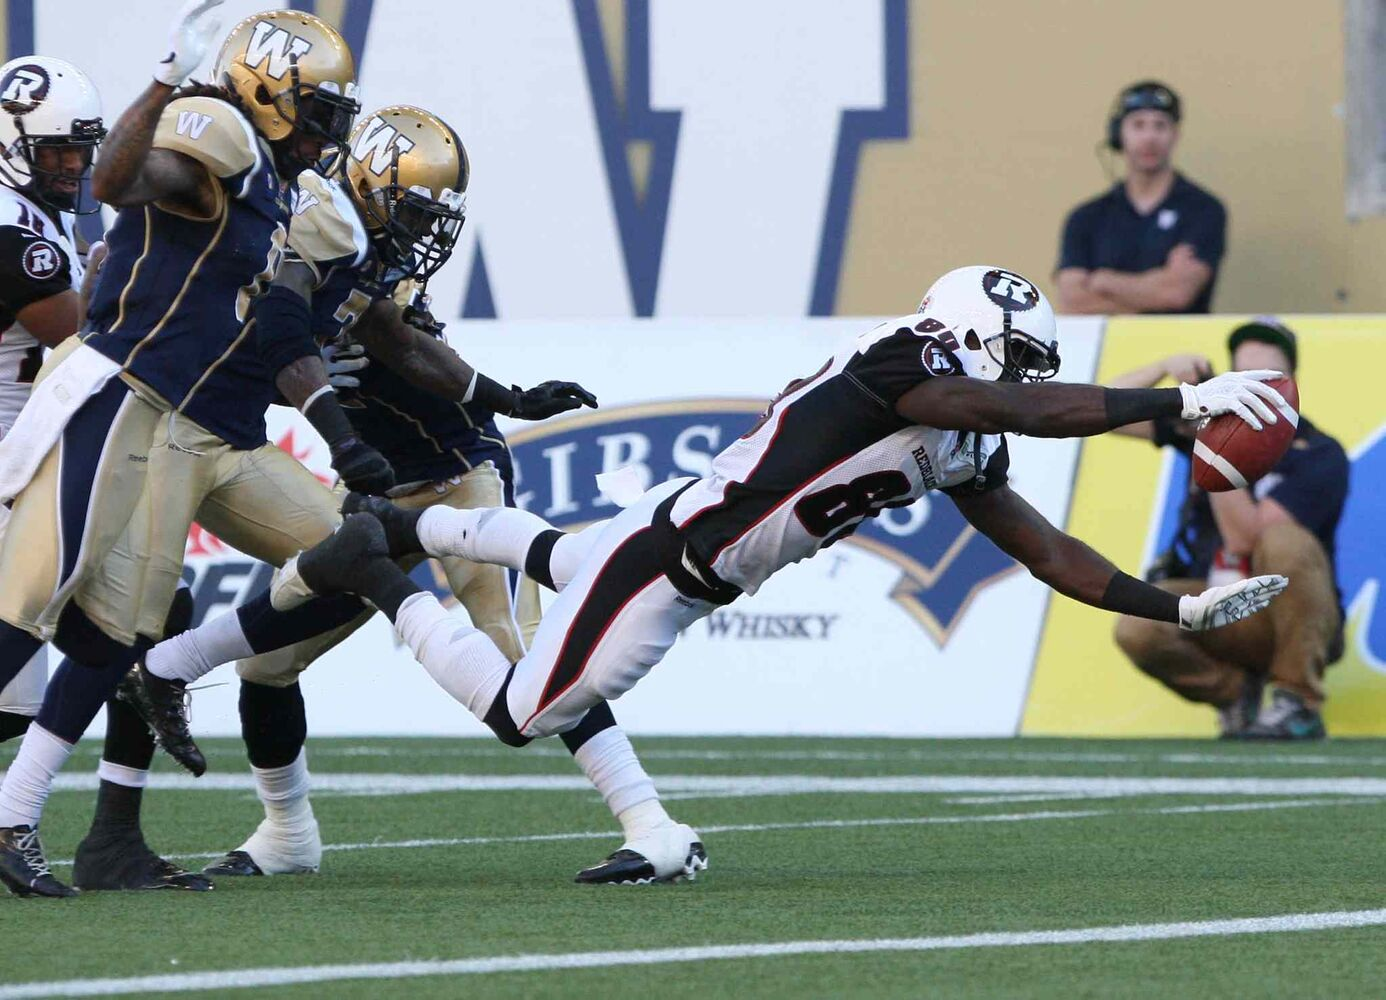 Winnipeg Blue Bombers could only watch as Ottawa Redblacks' Dobson Collins dives in for a first-quarter touchdown during CFL action at Investors Group Field in Winnipeg Thursday night. (JOE BRYKSA / WINNIPEG FREE PRESS)